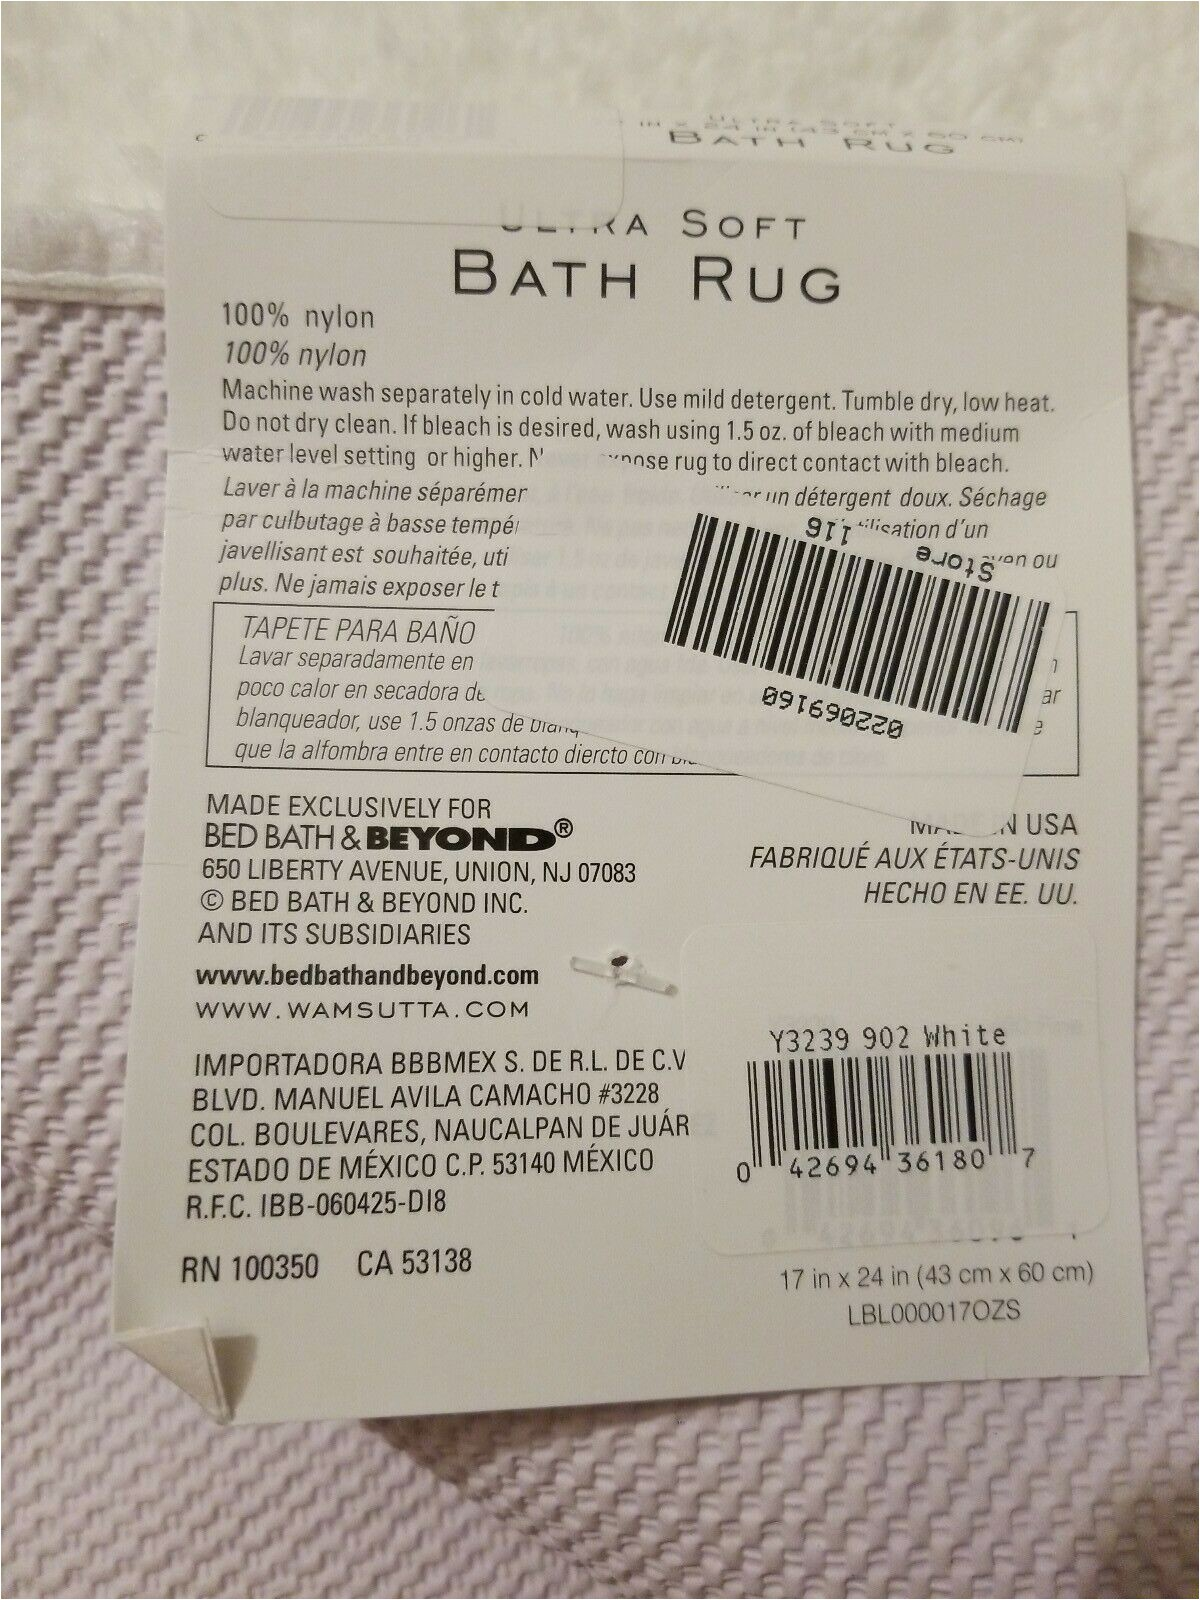 Bed Bath and Beyond Wamsutta Bath Rug Wamsutta Ultra soft 17 Inch X 24 Inch Bath Rug In White